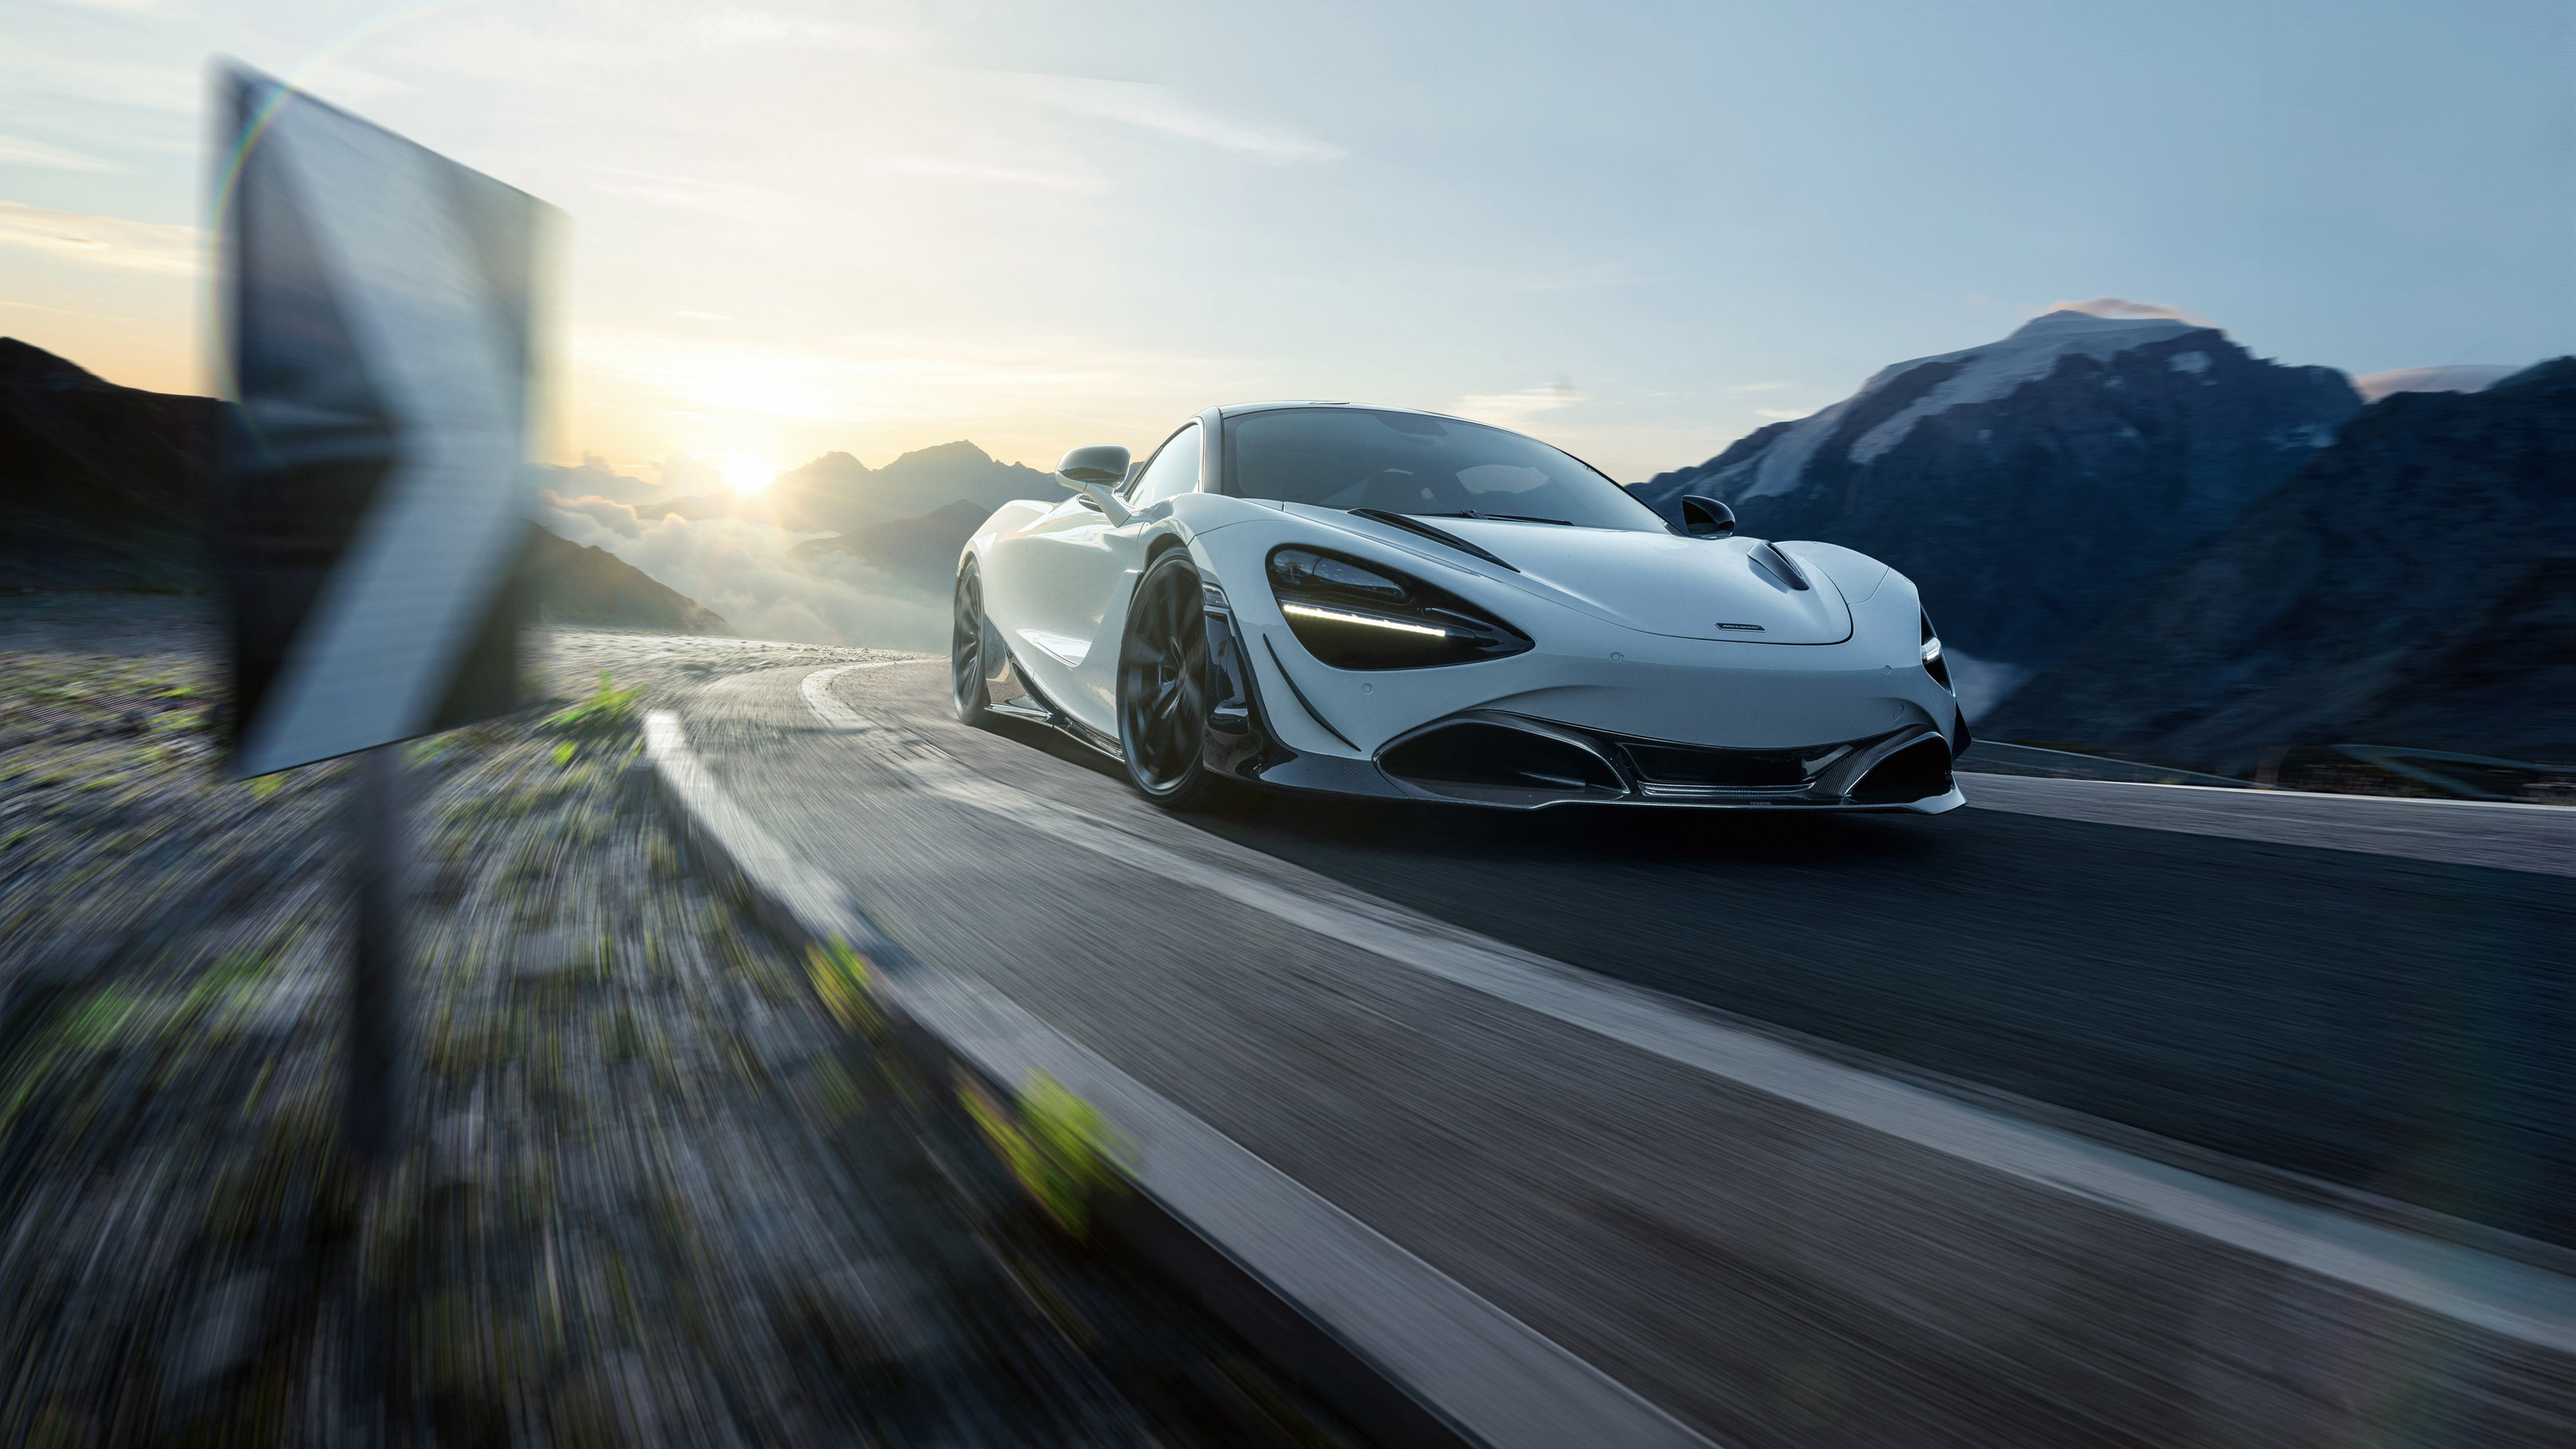 4k novitec mclaren 720s 1539113977 - 4k Novitec Mclaren 720s - mclaren wallpapers, mclaren 720s wallpapers, hd-wallpapers, cars wallpapers, 4k-wallpapers, 2018 cars wallpapers